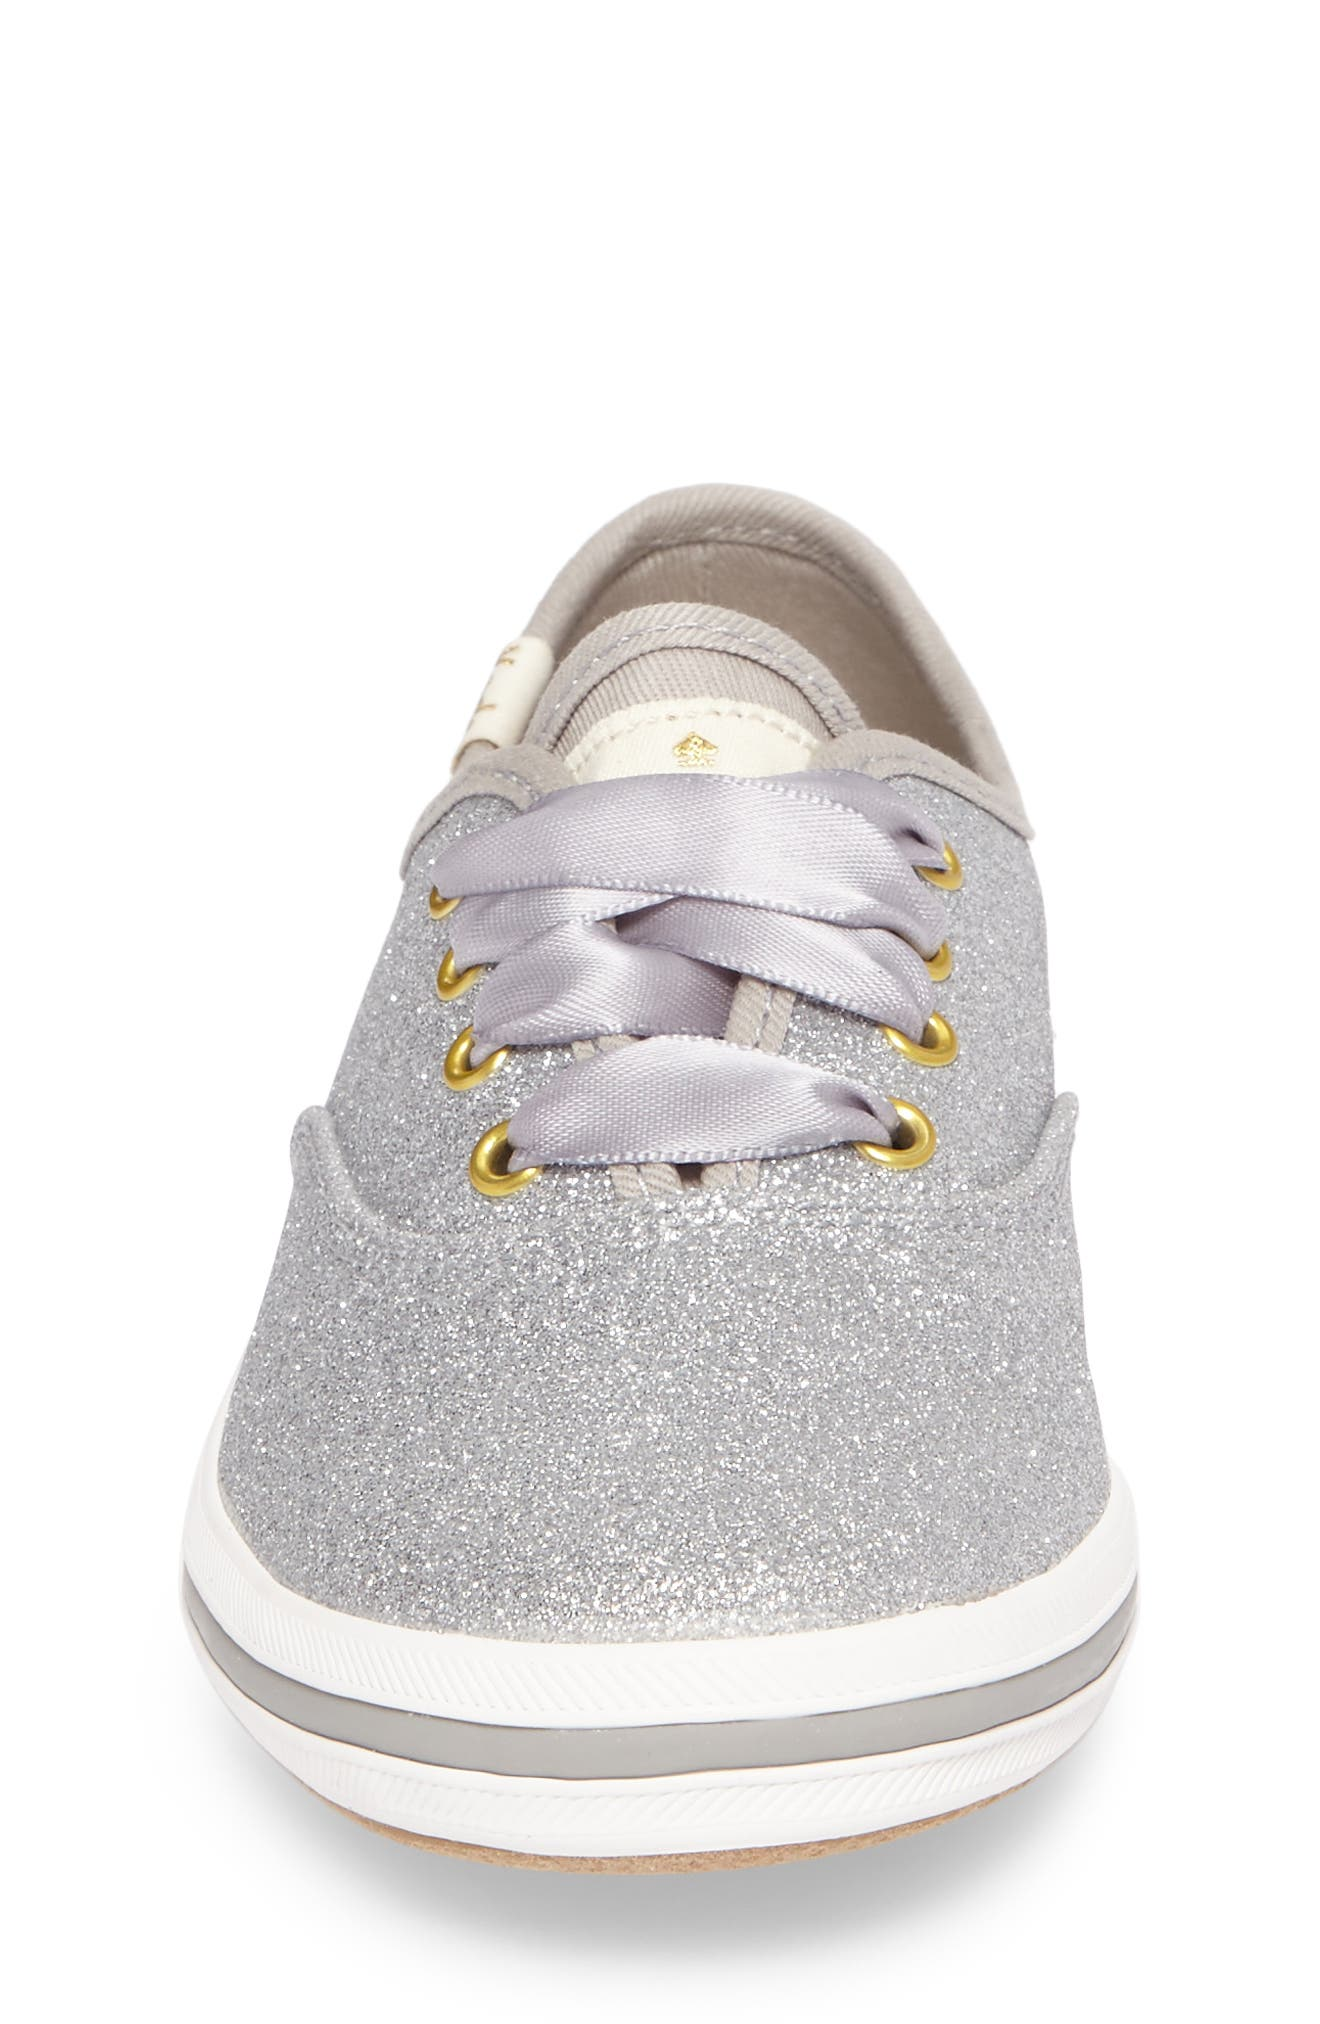 x kate spade new york Champion Glitter Sneaker,                             Alternate thumbnail 4, color,                             SILVER